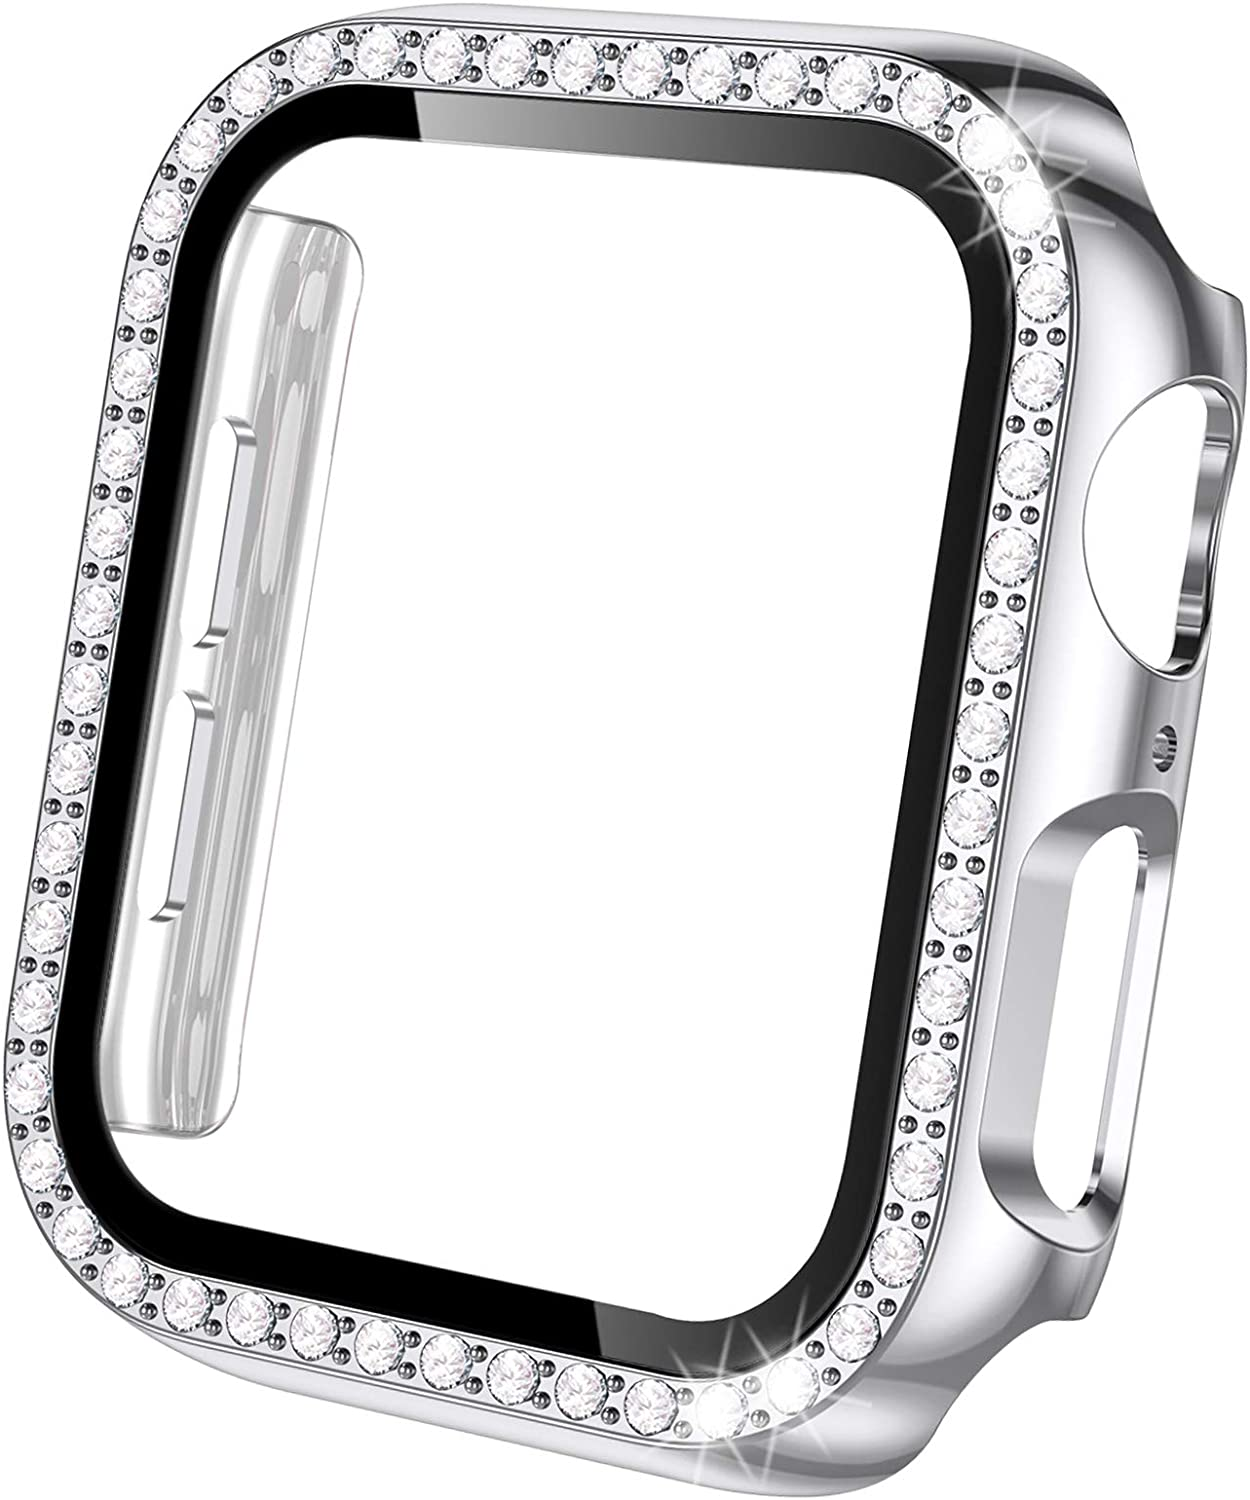 Akkerds Cases Compatible with Apple Watch 38mm, Bling Crystal Shiny Diamonds PC Bumper & HD Tempered Glass Screen Protector Overall Protective Compatible for iWatch Series 3 2, Women Girls, Silver